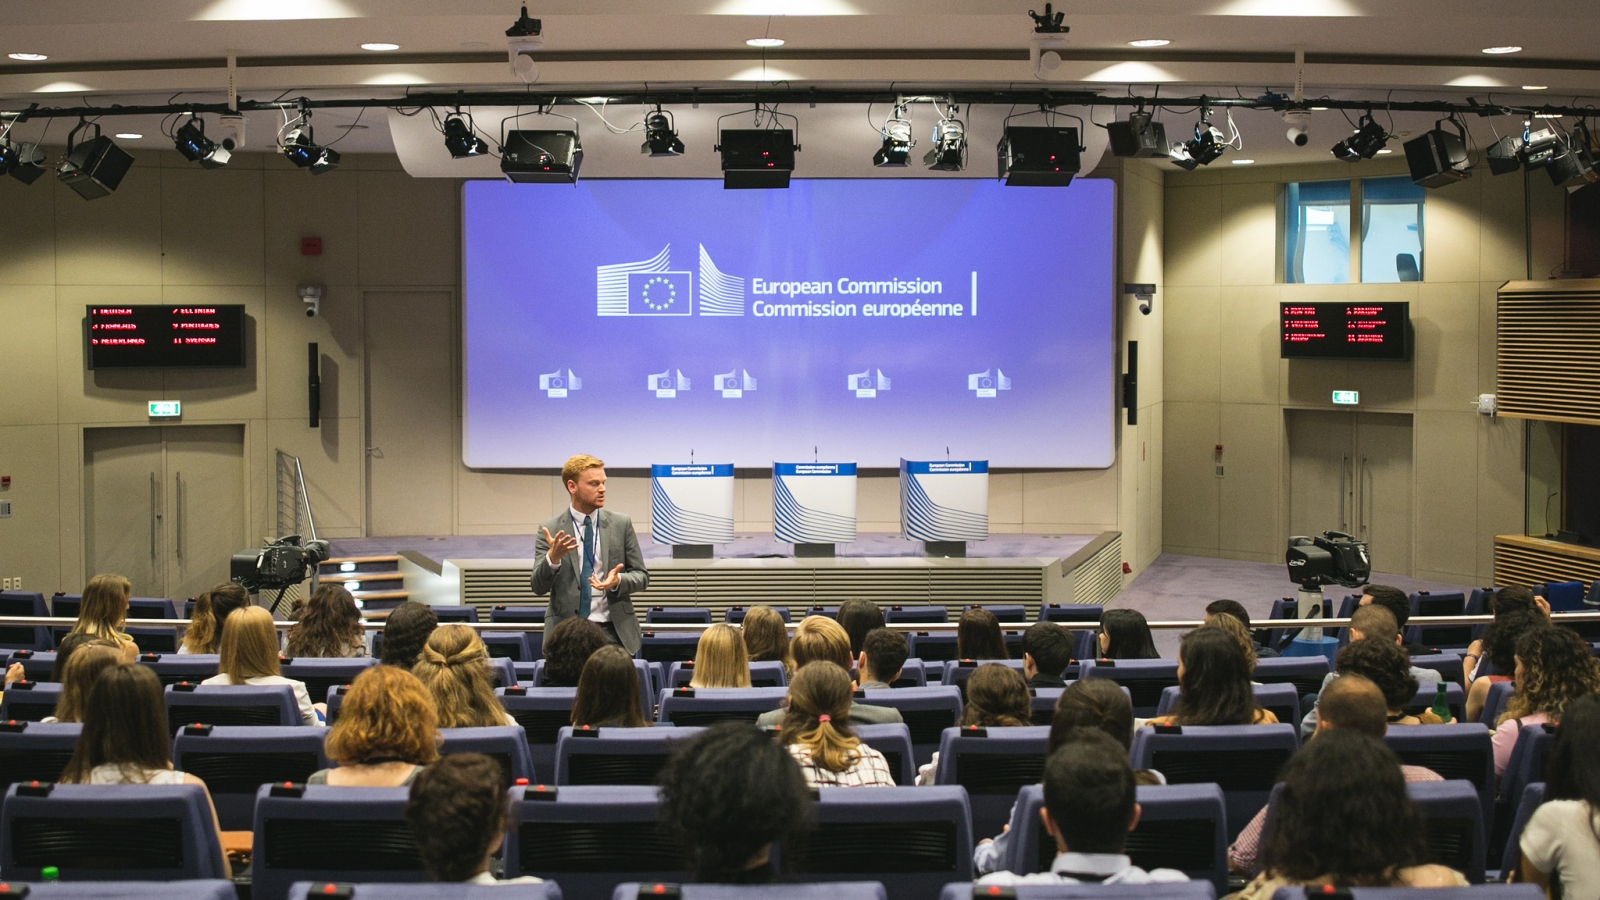 Tour to the press rooms at the European Commission's Berlaymont building